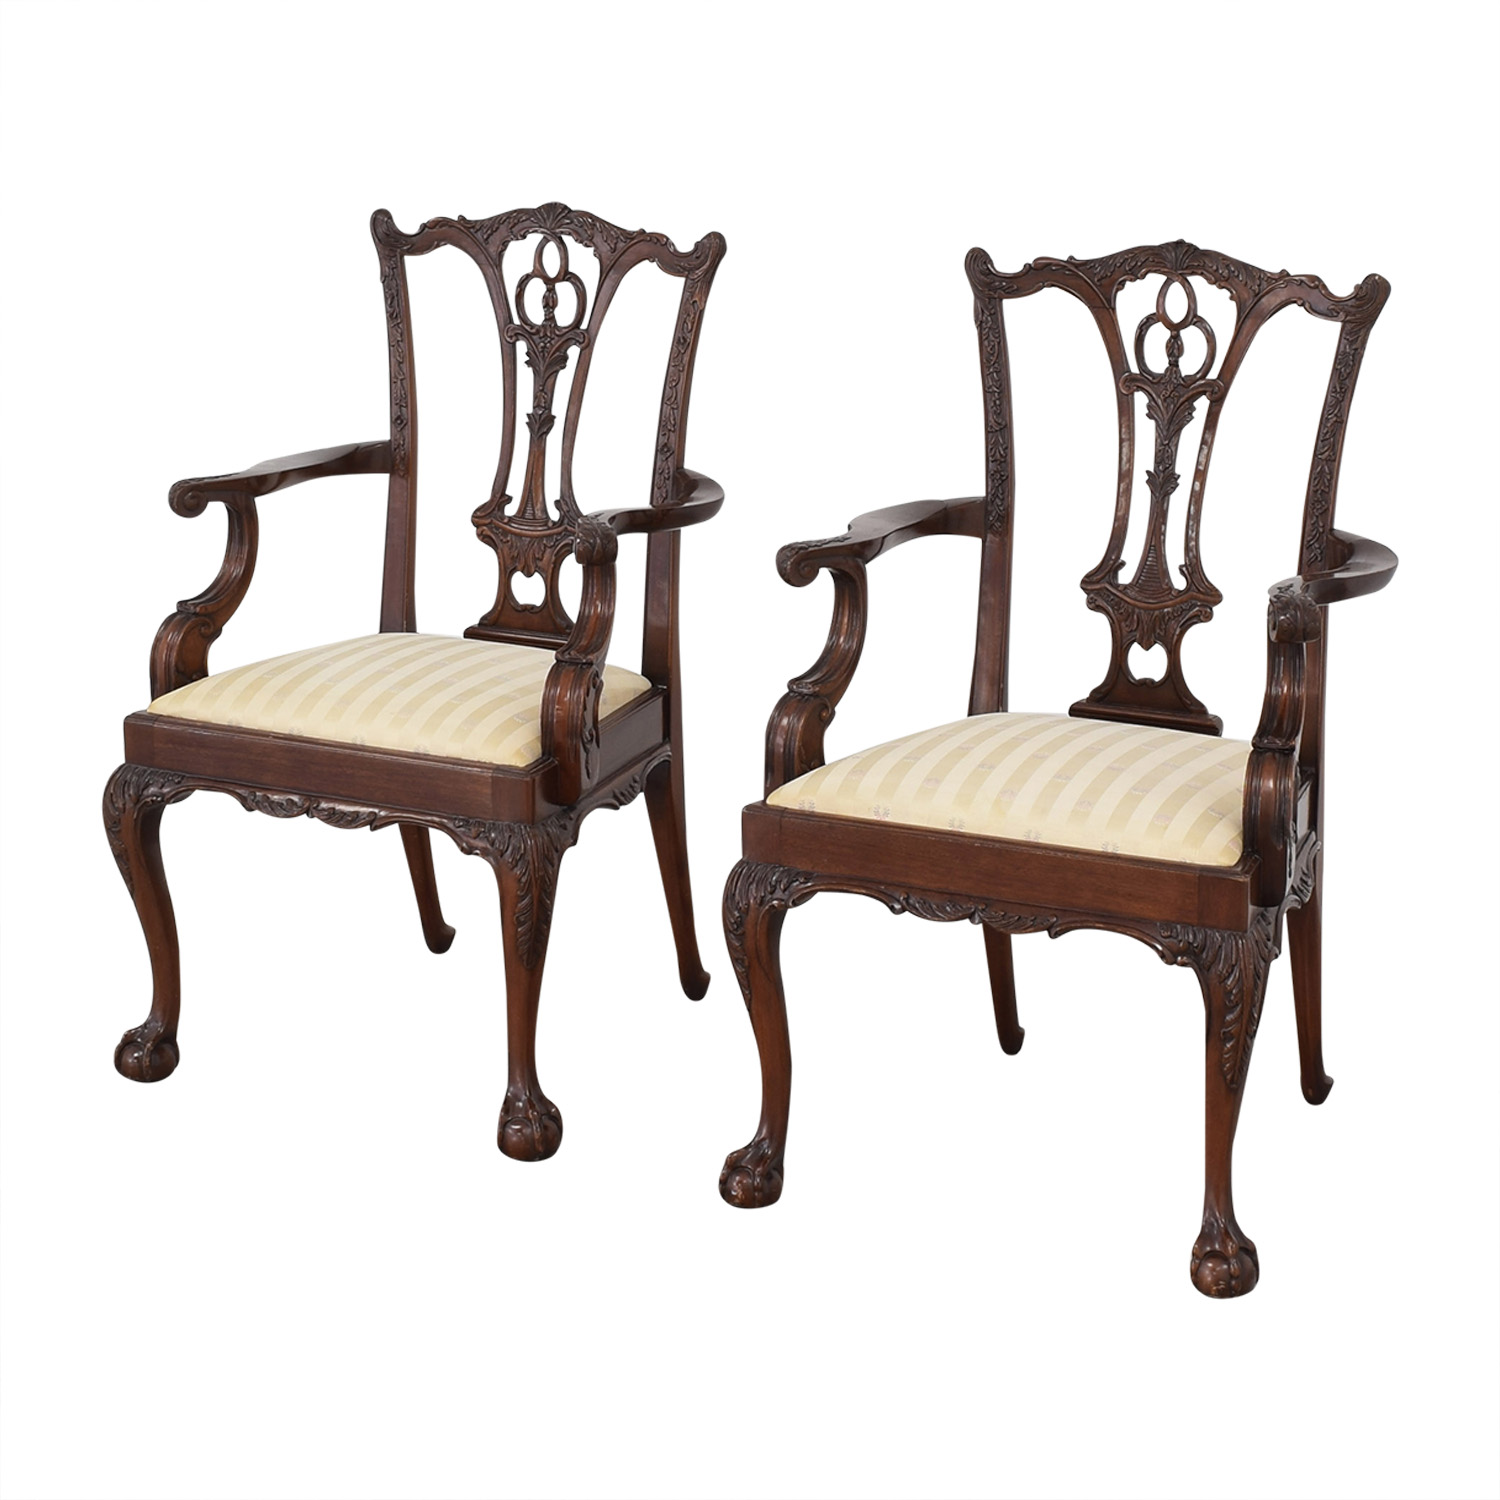 Macy's Hickory Furniture Upholstered Dining Chairs for sale